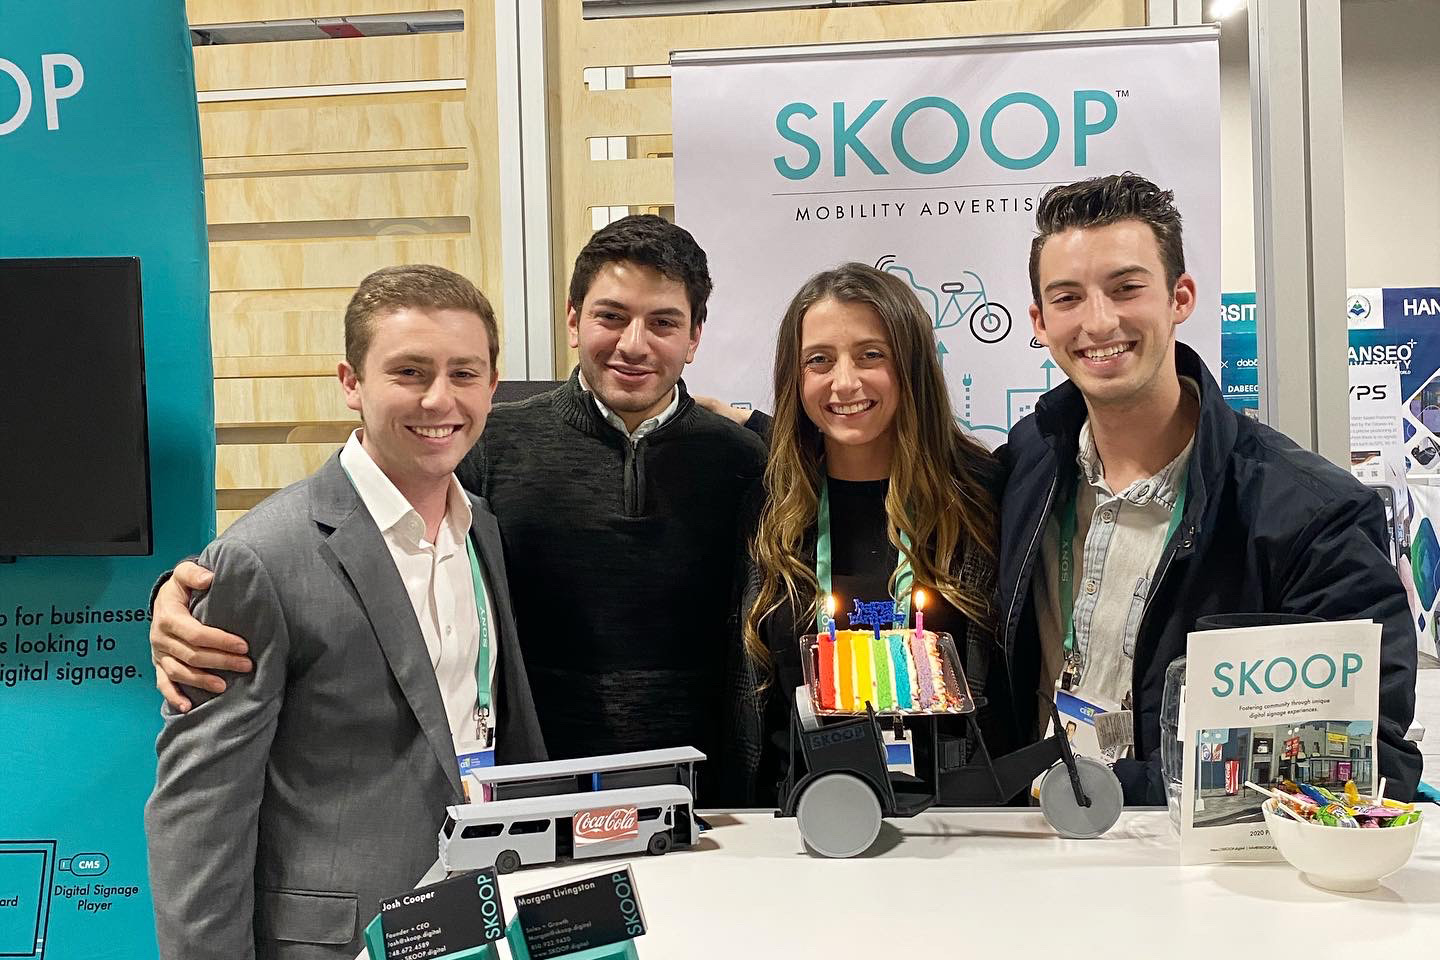 SKOOP crew inside CES booth